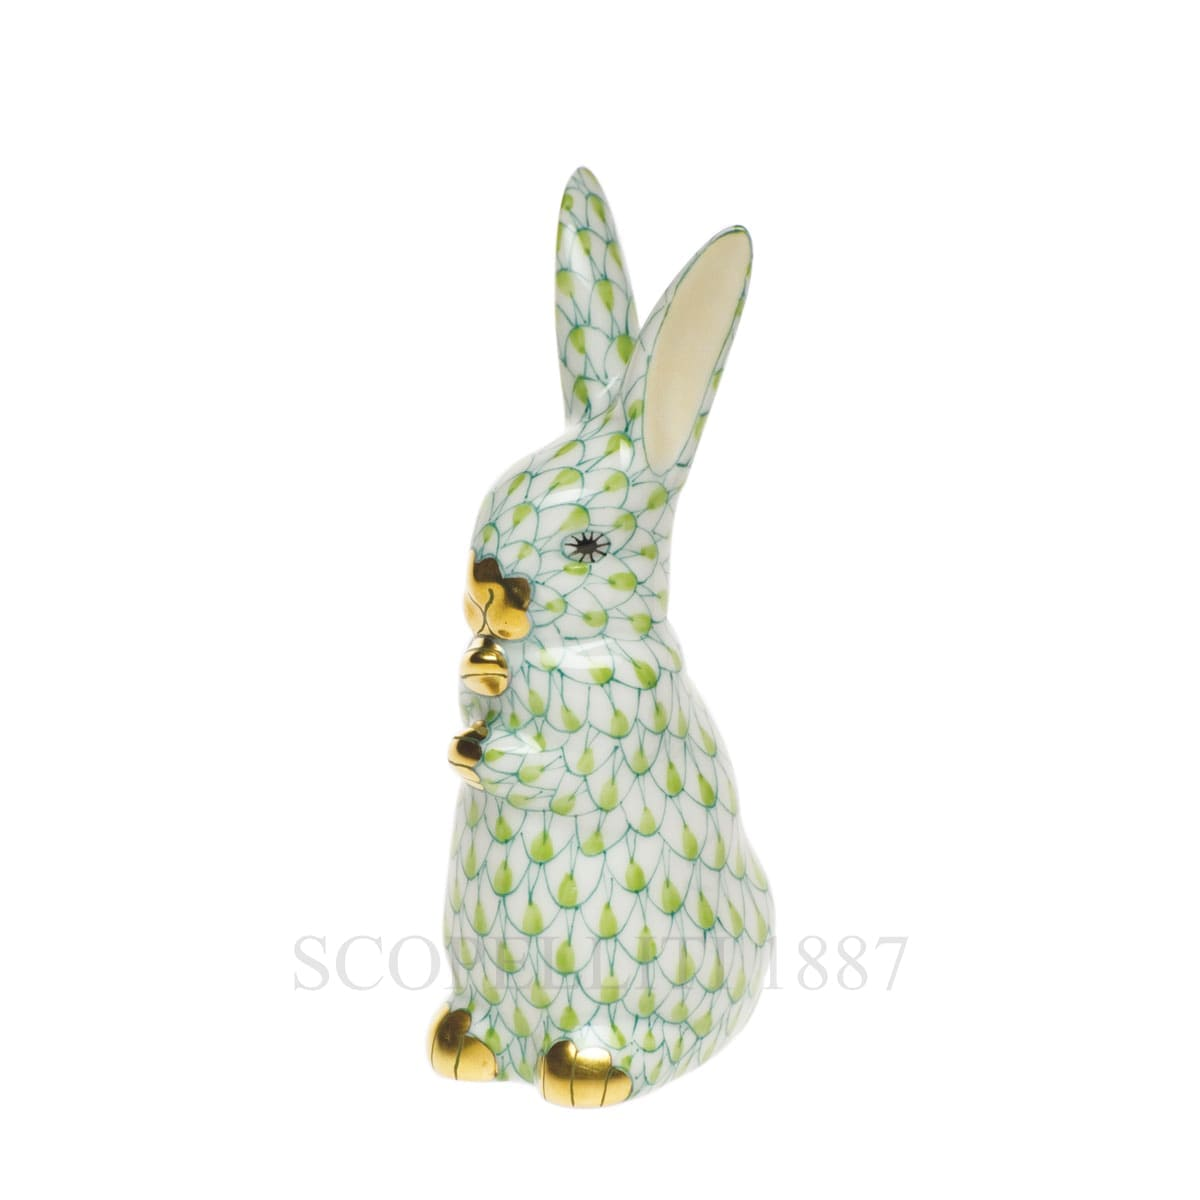 herend porcelain bunny figurine light green